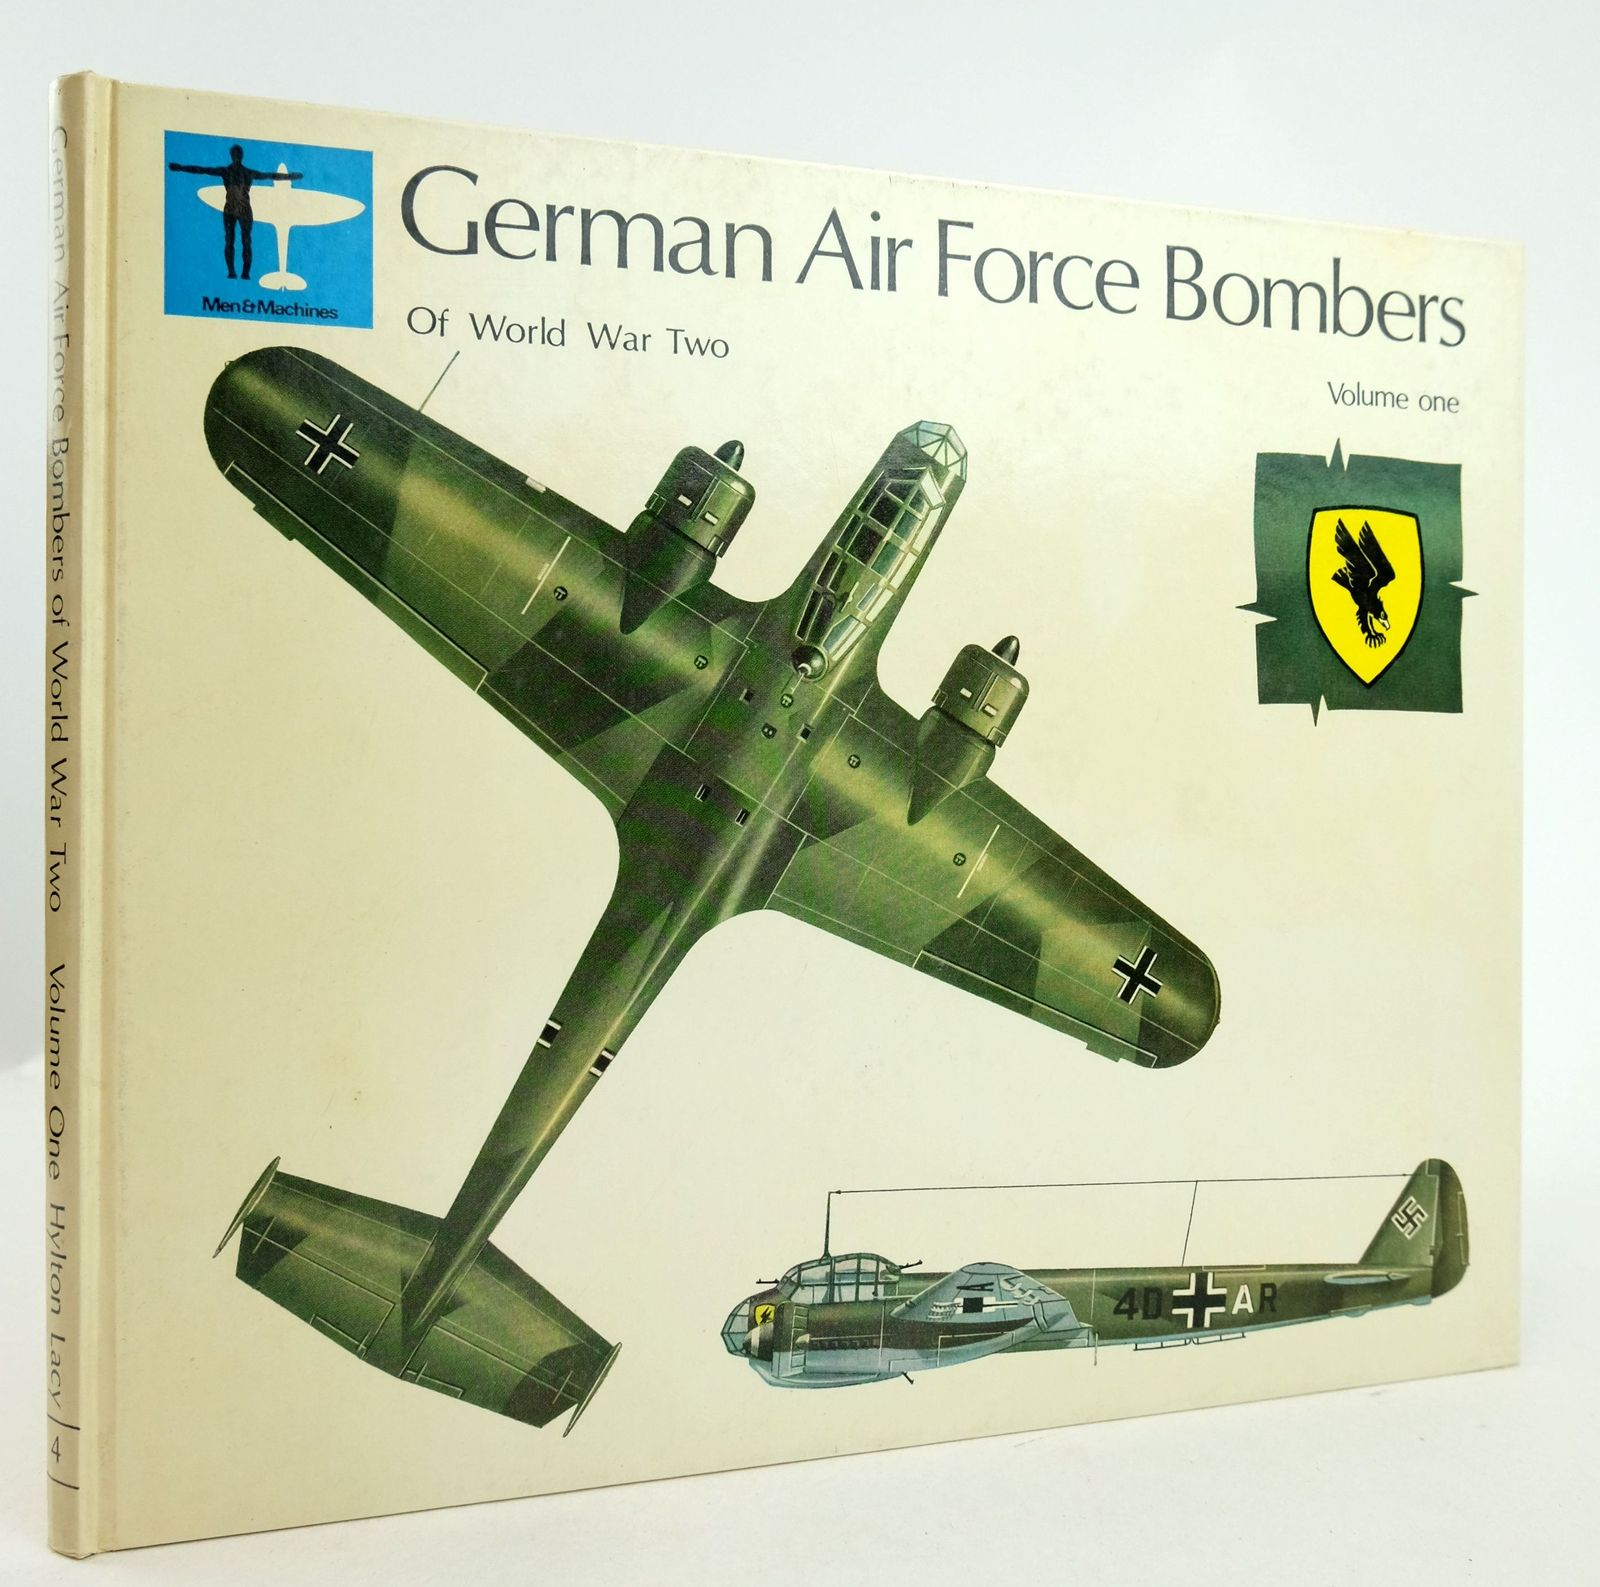 Photo of GERMAN AIR FORCE BOMBERS OF WORLD WAR TWO VOLUME ONE written by Price, Alfred illustrated by Roffe, Michael published by Hylton Lacy Publishers Limited (STOCK CODE: 1819709)  for sale by Stella & Rose's Books